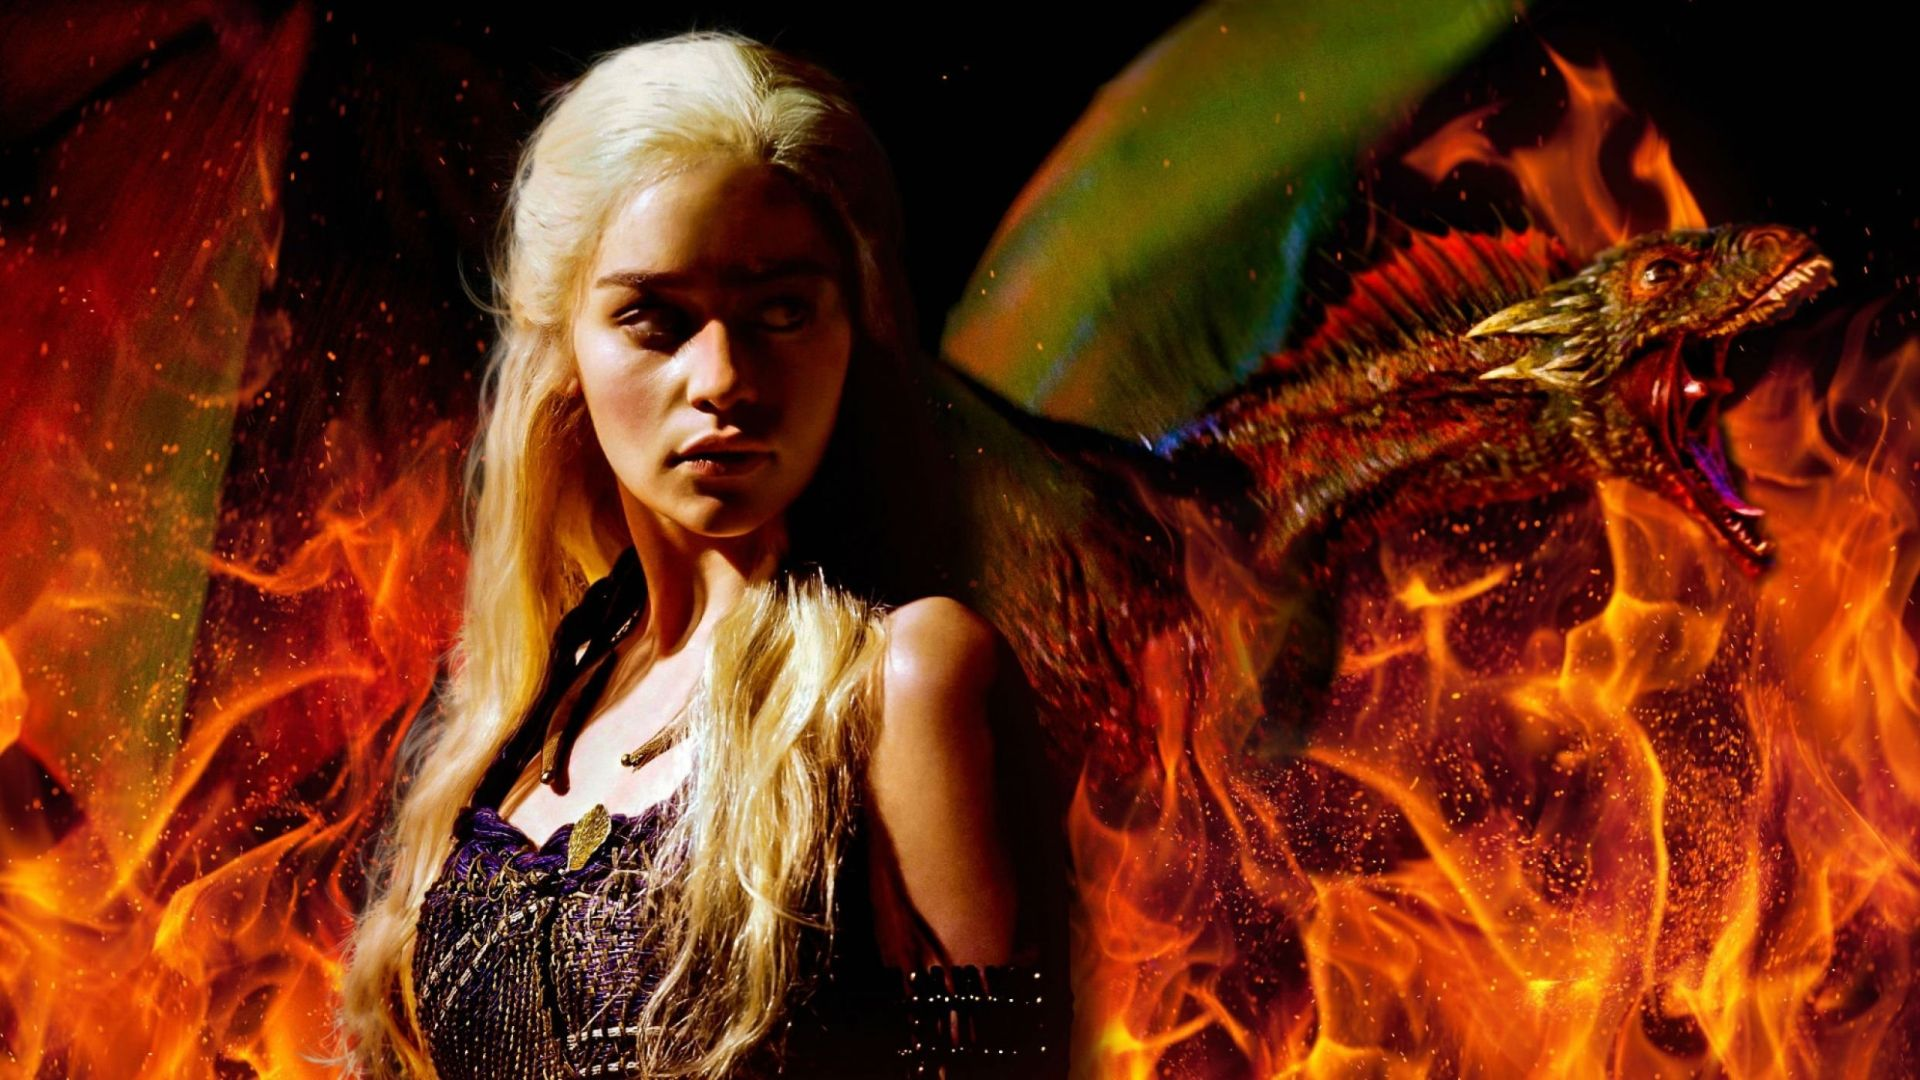 Game of Thrones Daenerys and fire